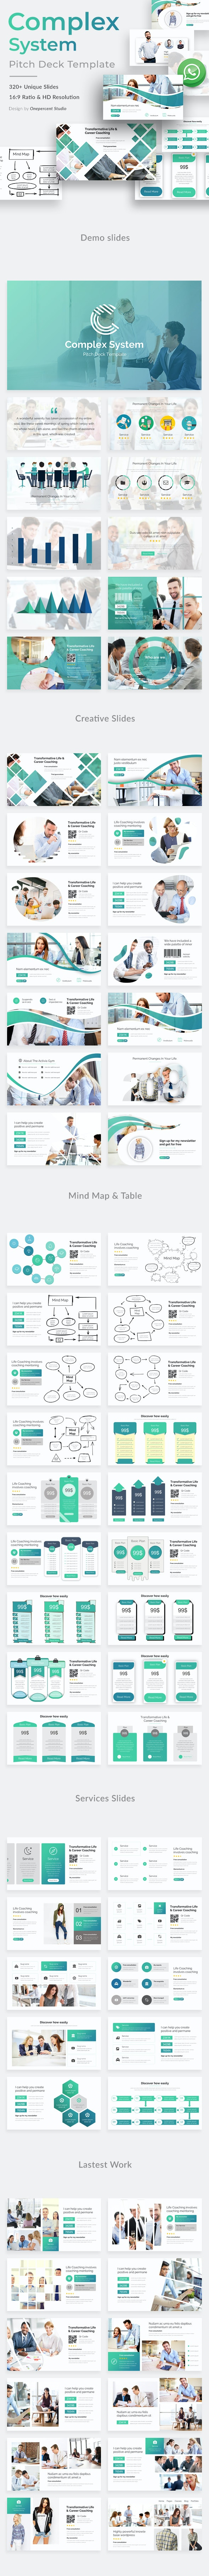 Complex System Pitch Deck Powerpoint Template - Business PowerPoint Templates